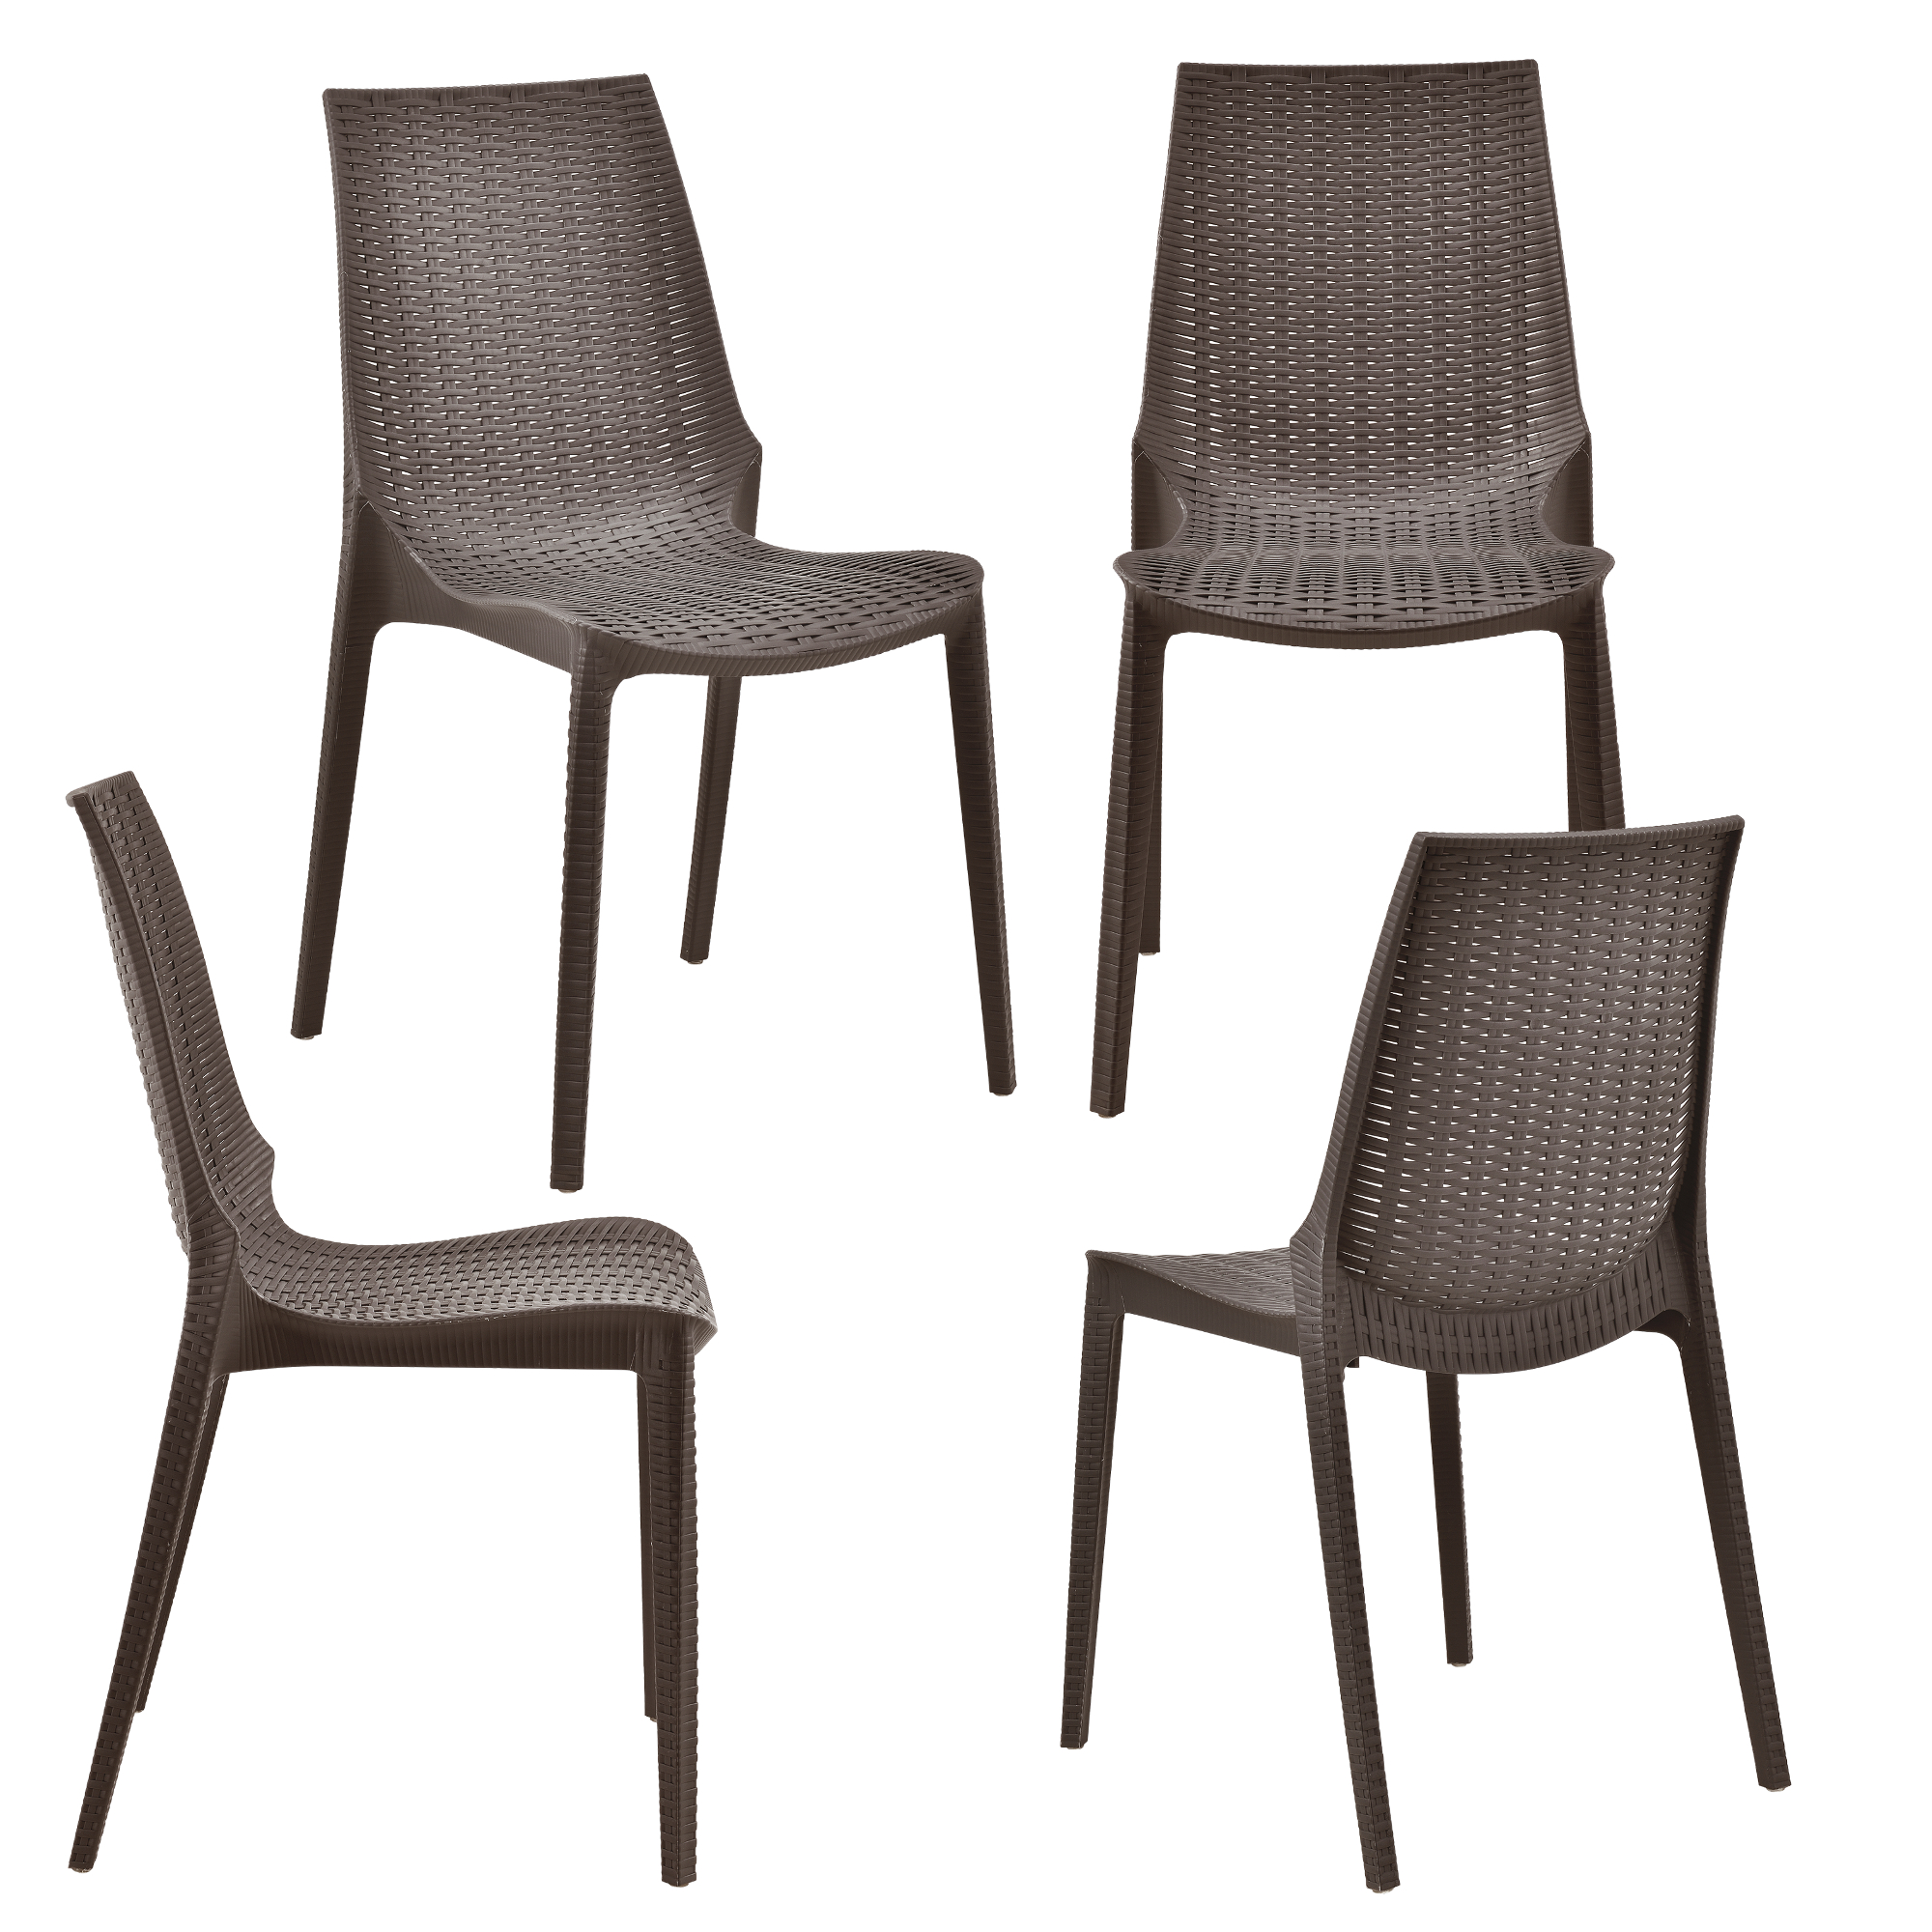 ensemble table 6 chaises meuble du jardin marron aspect rotin ebay. Black Bedroom Furniture Sets. Home Design Ideas